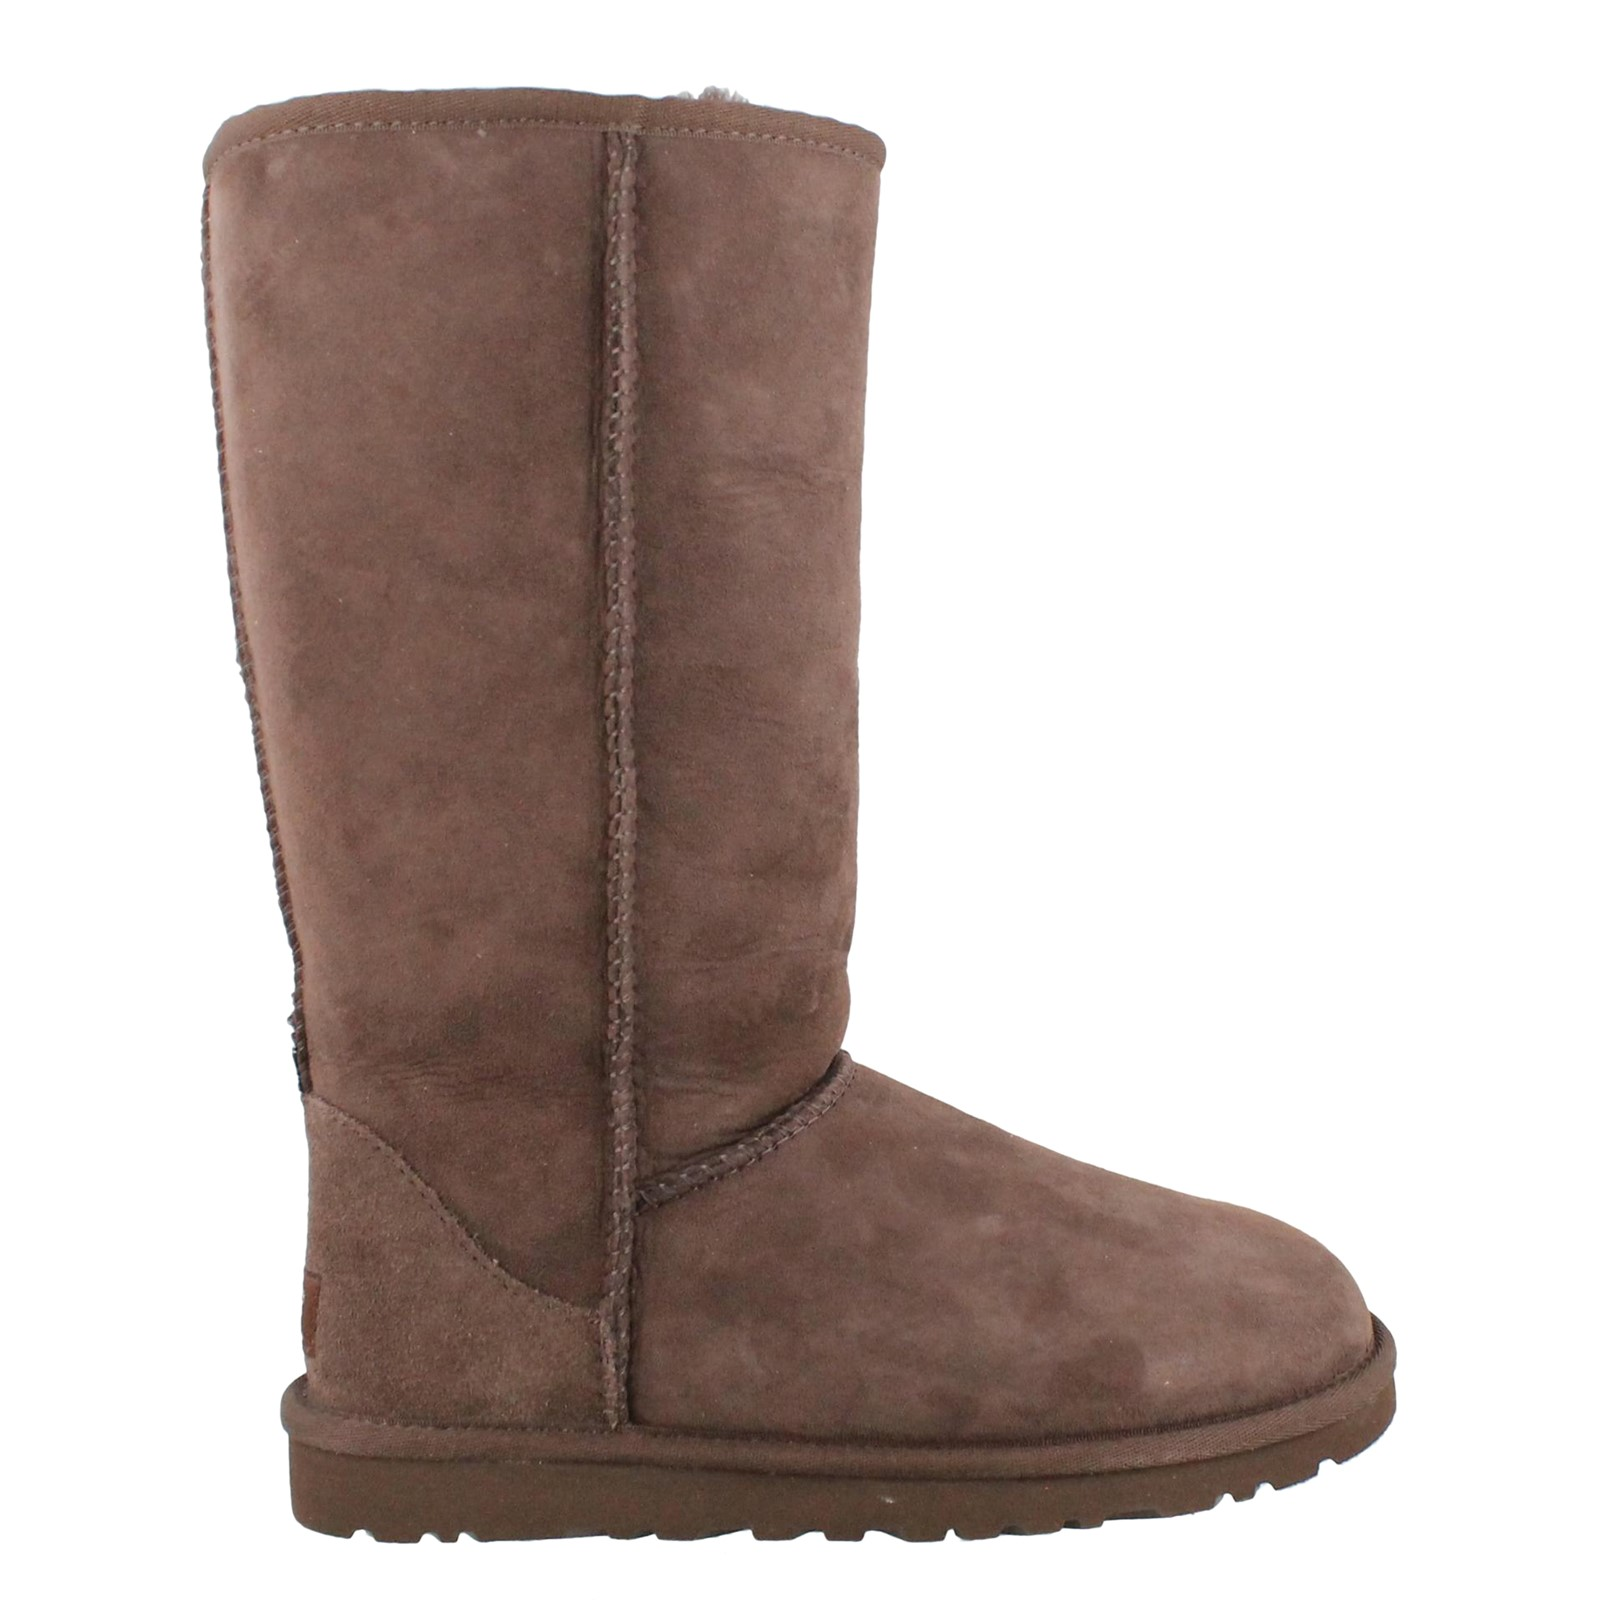 Women's Uggs, Classic Tall boot